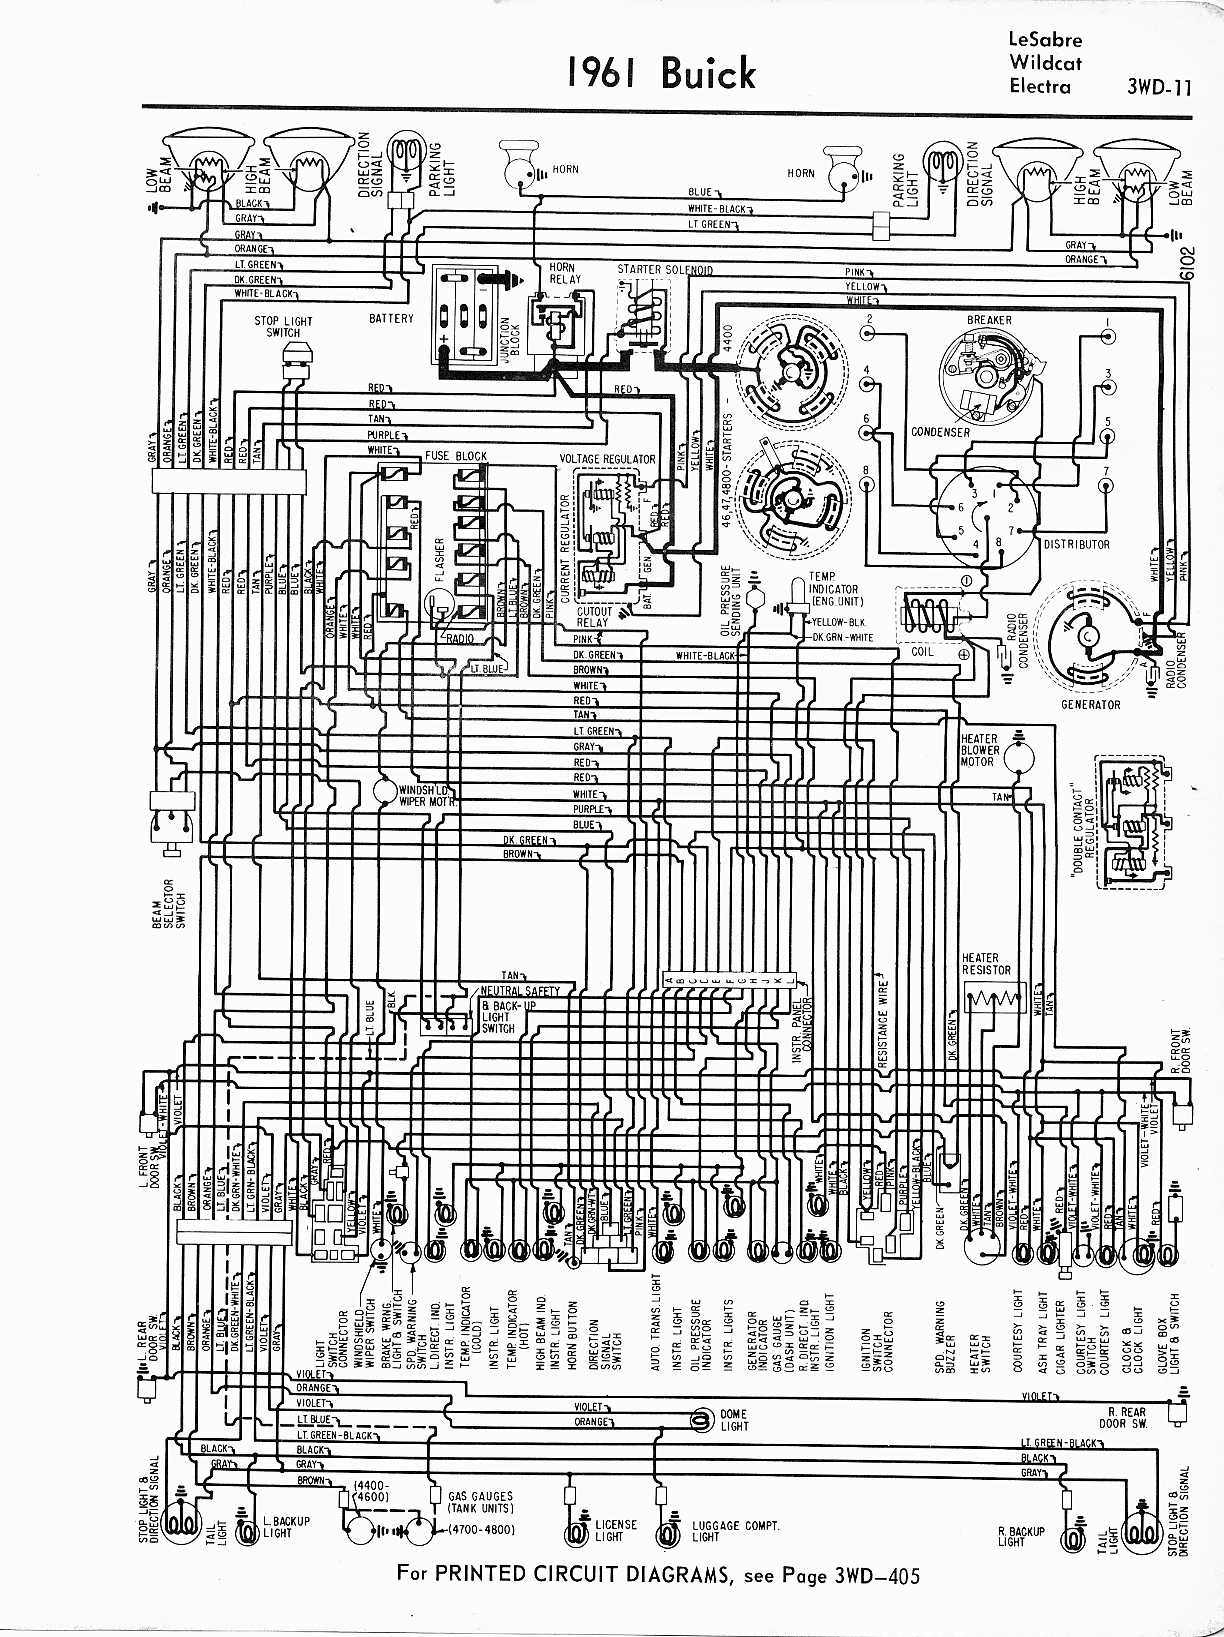 hight resolution of wiring diagram of 1961 buick lesabre wiring diagram show buick wiring diagrams 1957 1965 1961 lesabre